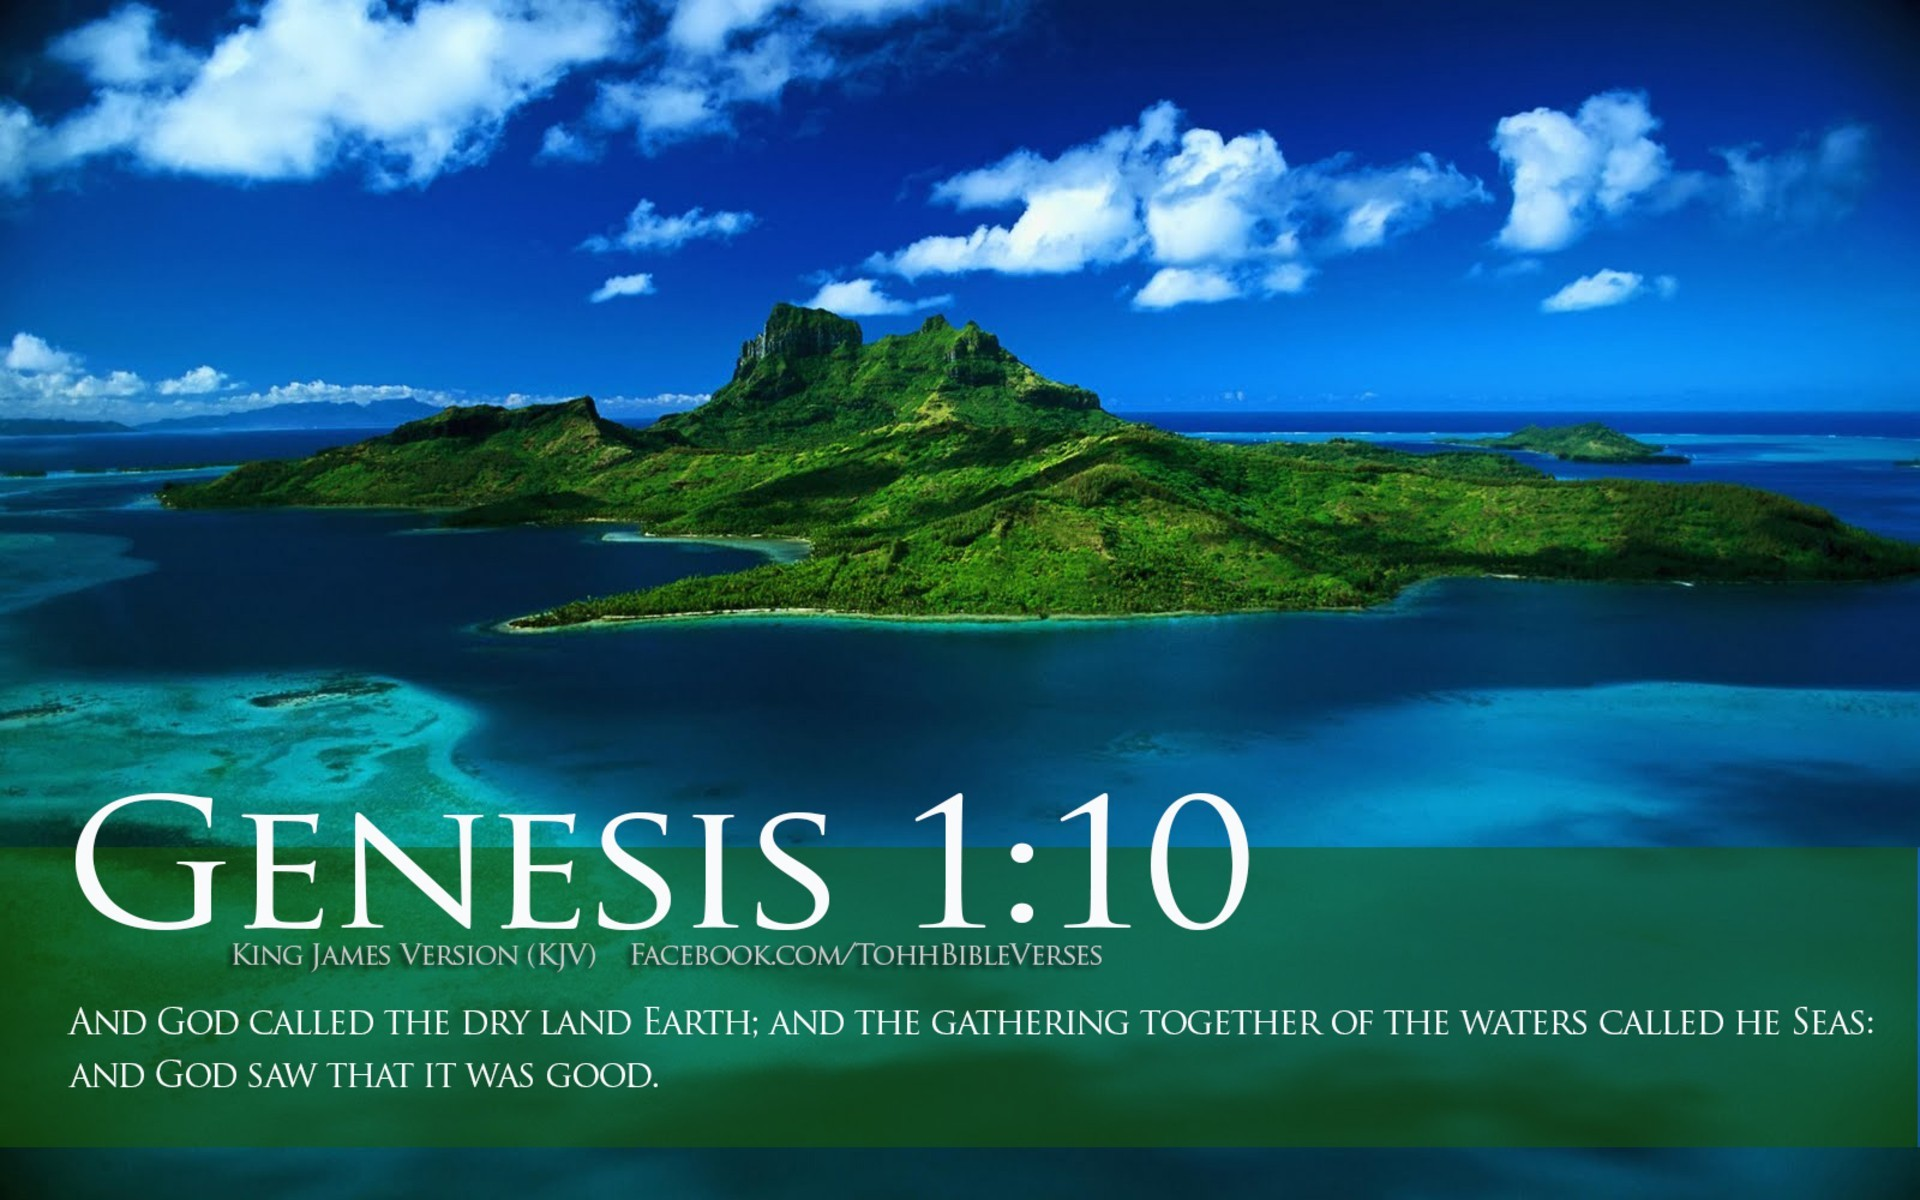 1920x1200 bible verse wallpaper a·a' download free cool hd backgrounds for